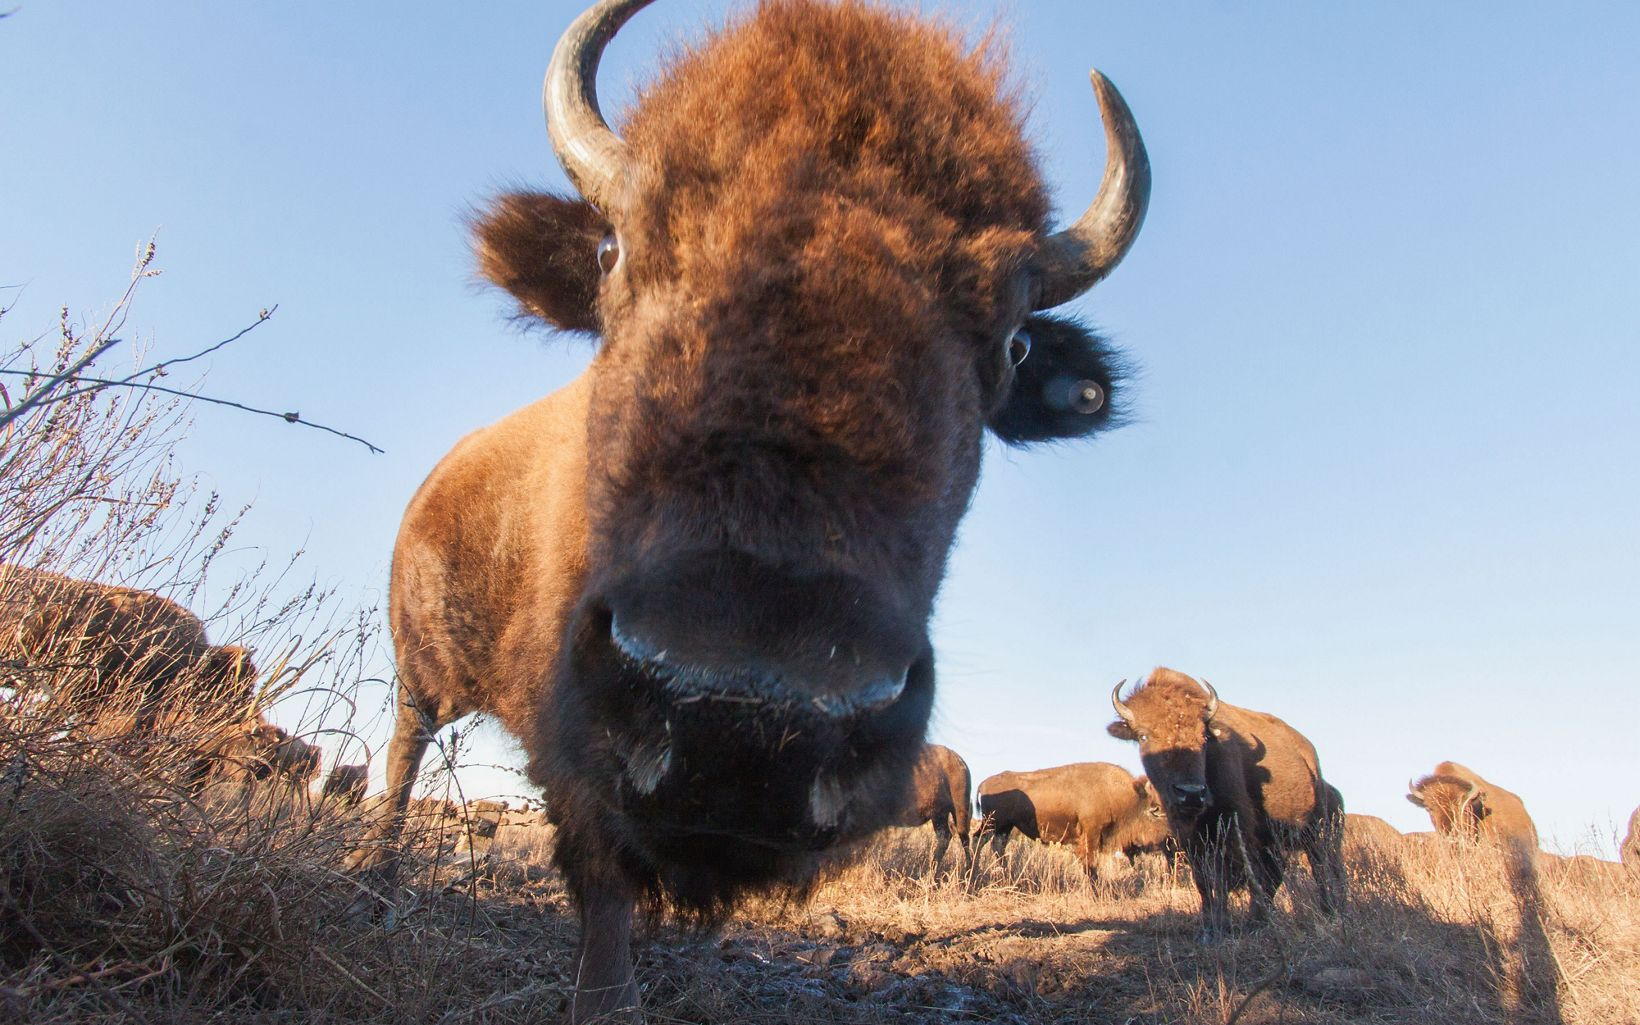 A camera trap set up on the prairie at captures a curious bison.